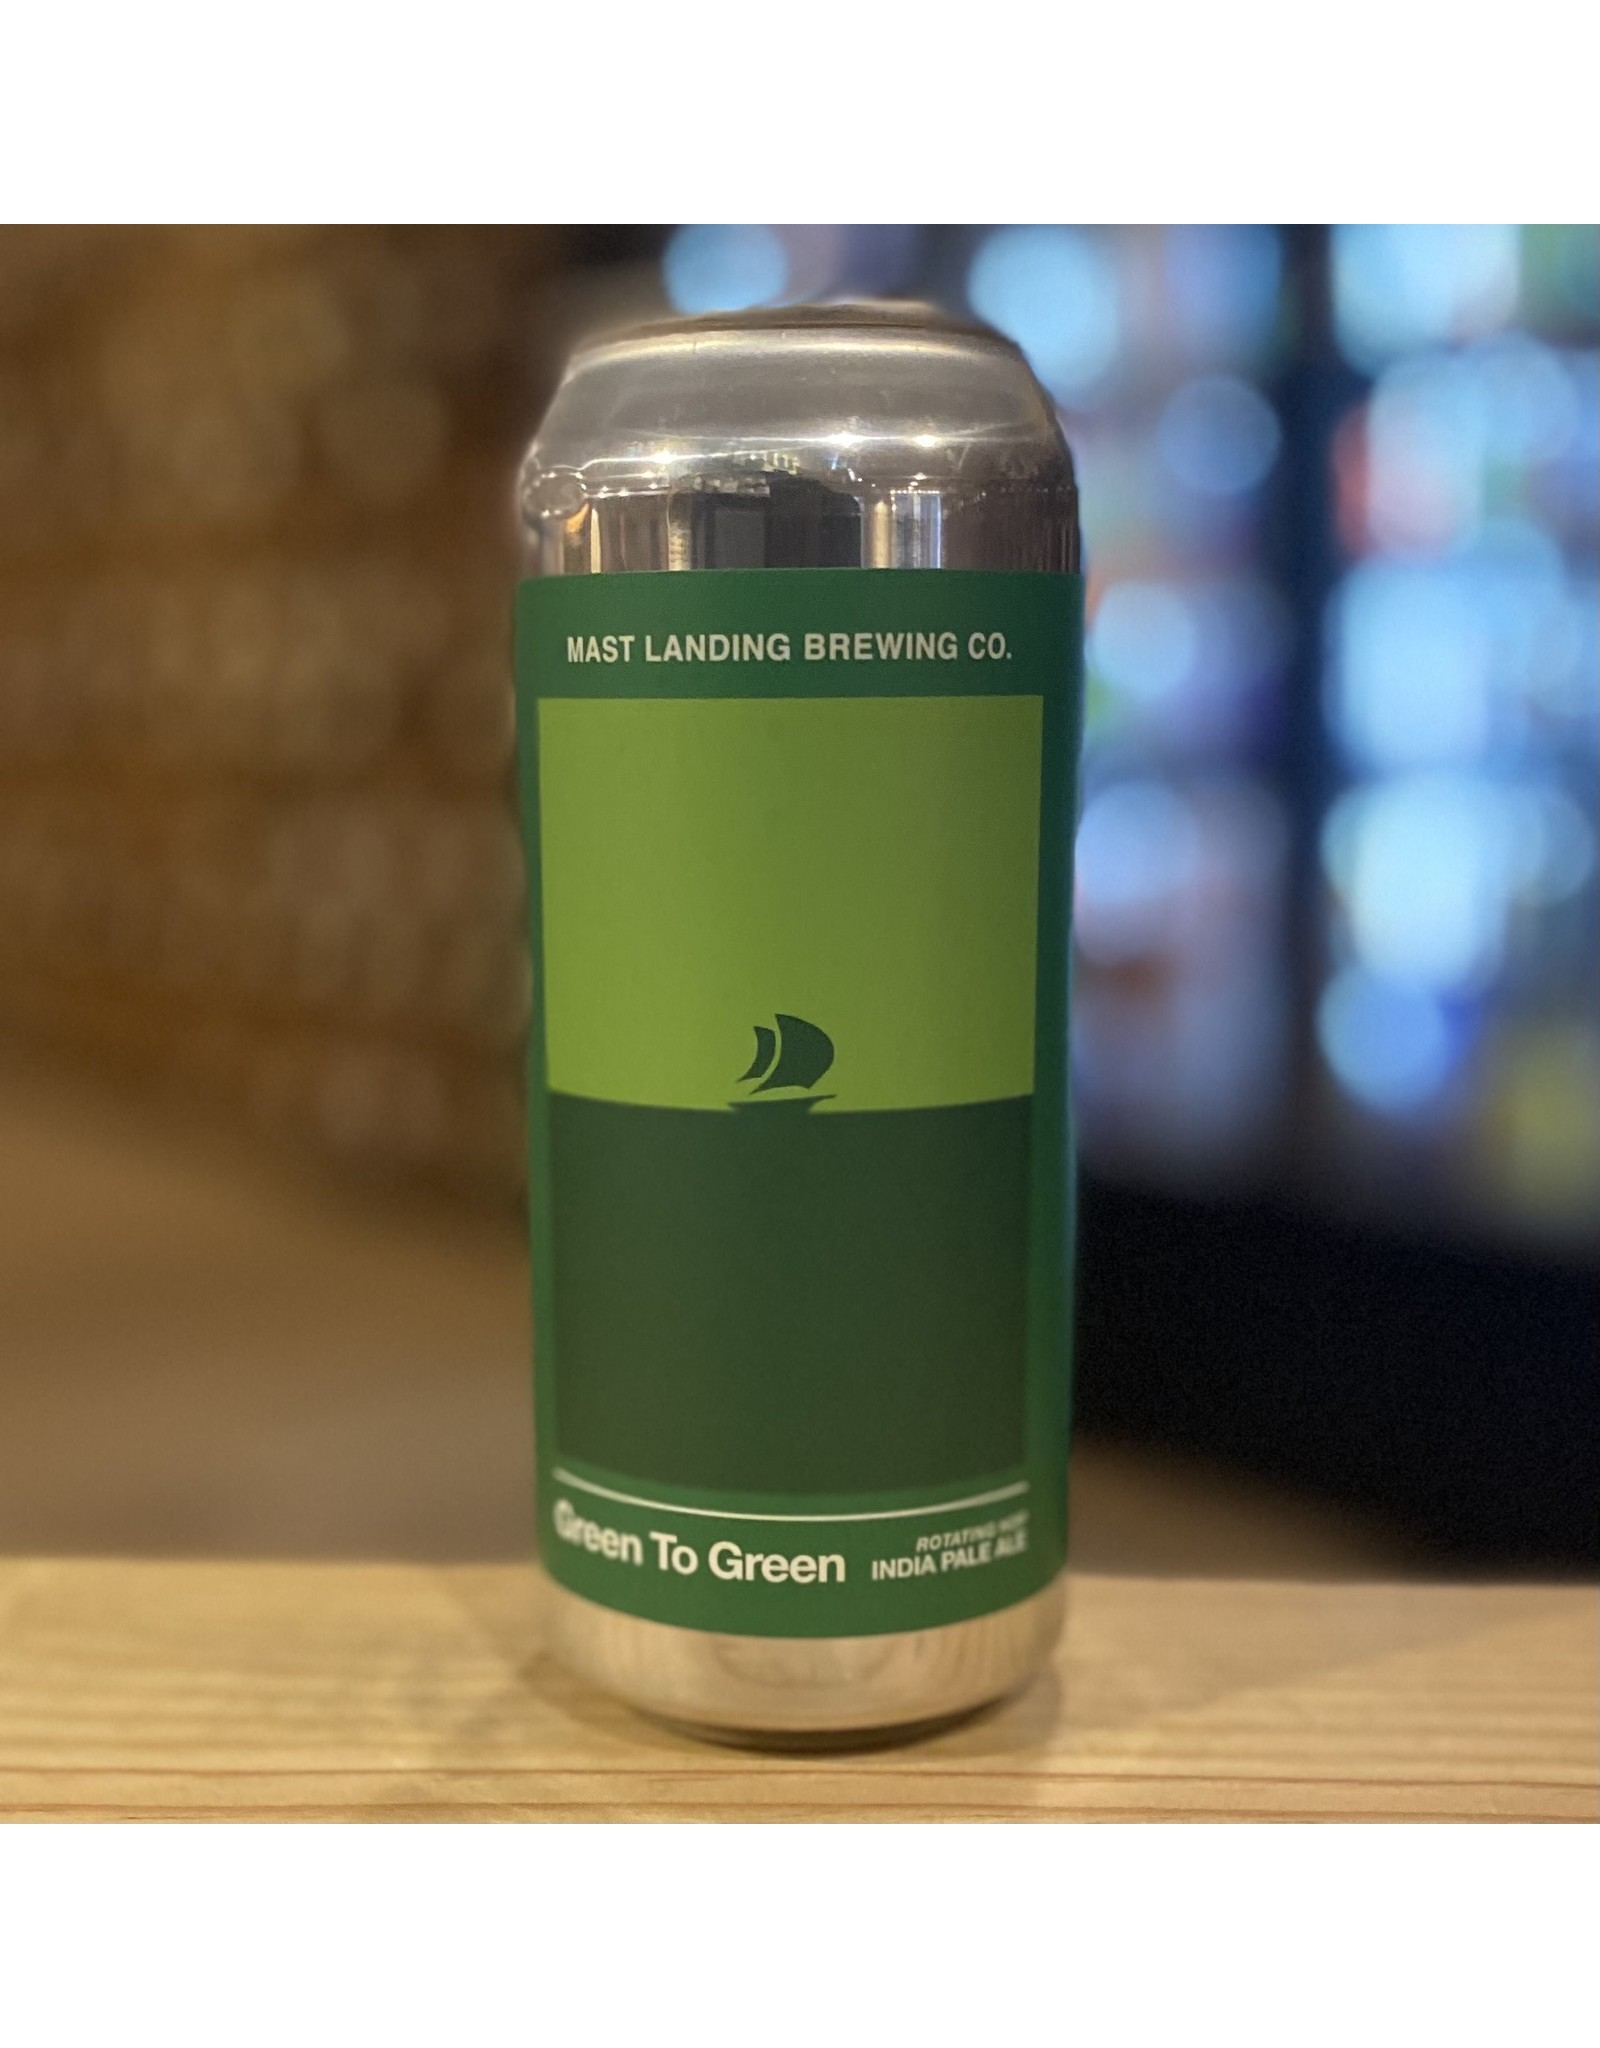 "IPA Mast Landing ""Green To Green"" Rotating Hop IPA Batch 31 - Westbrook, Maine"